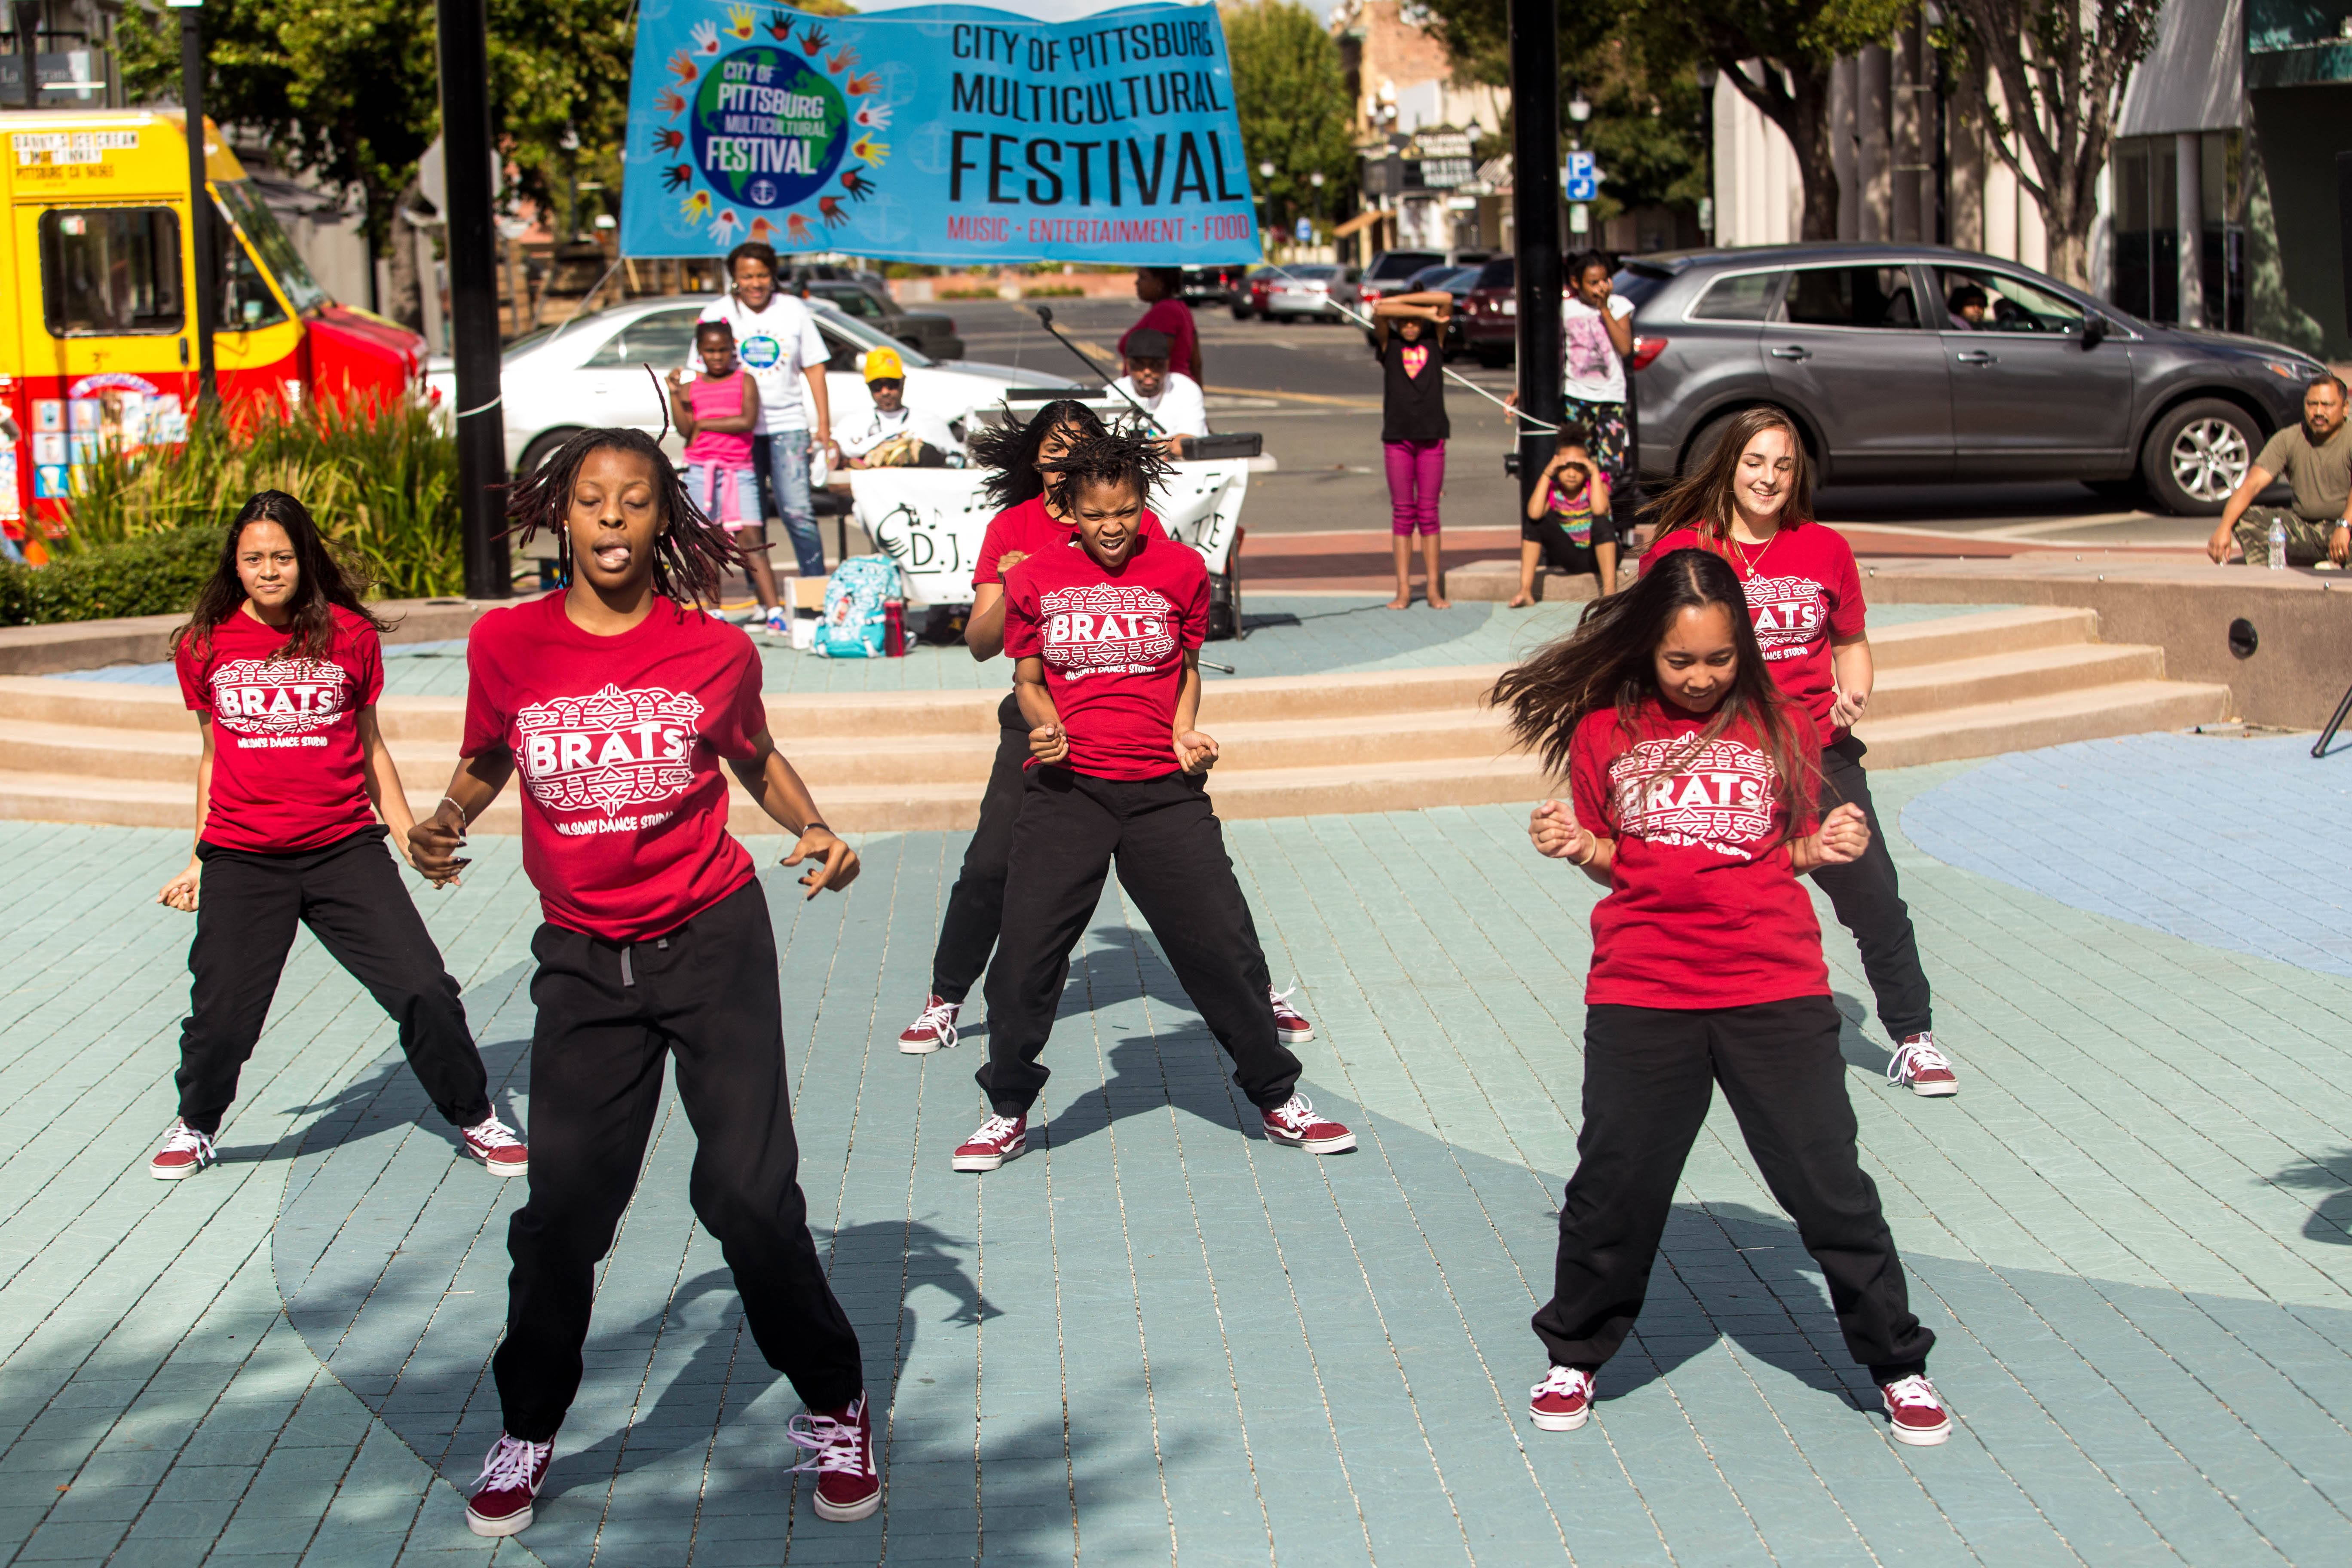 CITY_PITTSBURG_MULTICULTURAL_OCTOBER_2016 (446)